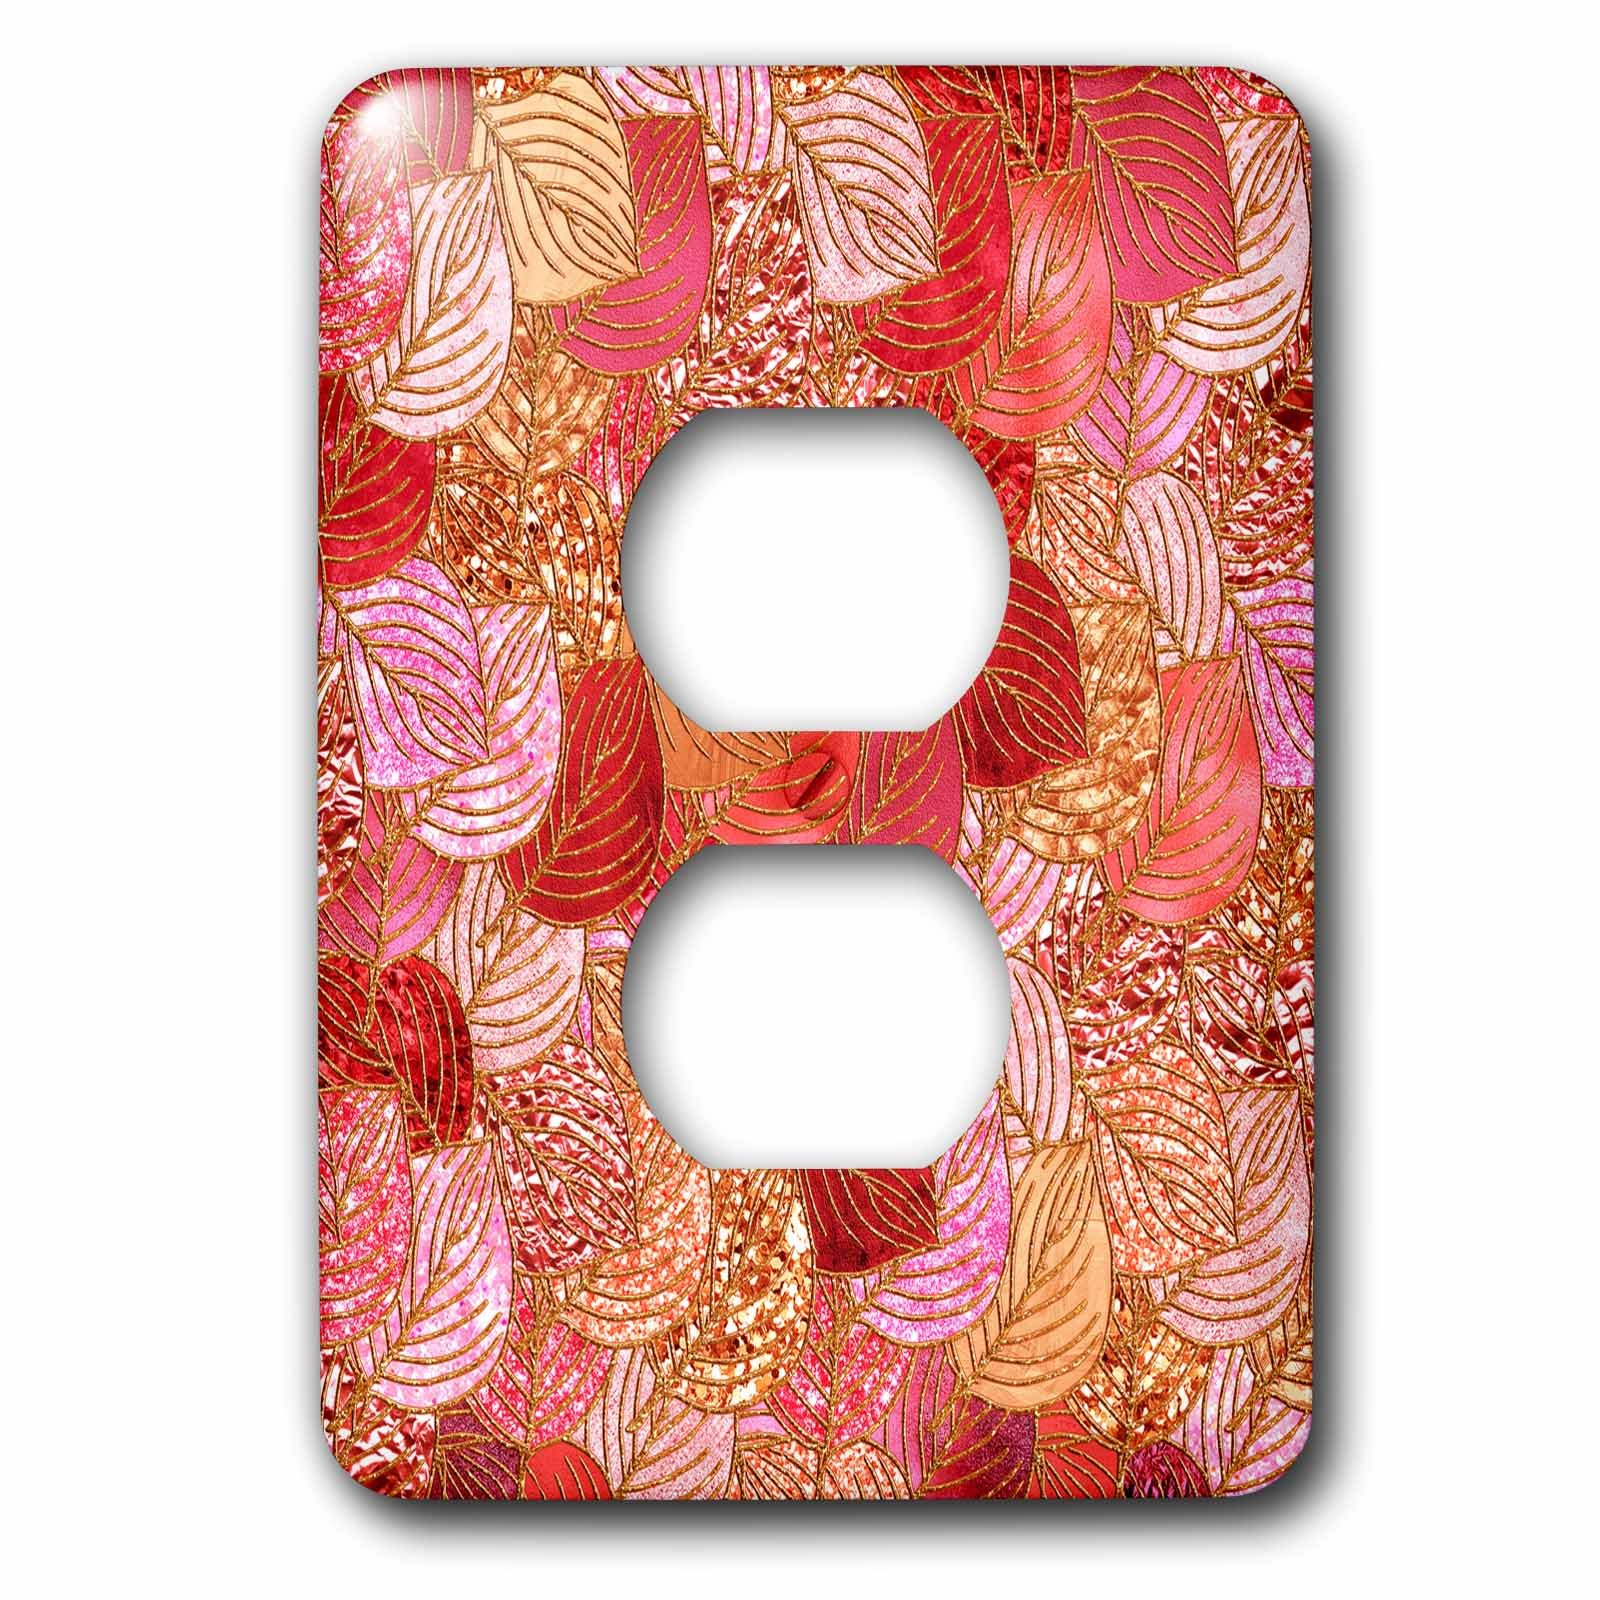 3dRose Uta Naumann Faux Glitter Pattern - Luxury Red Faux Metal Foil Glitter Autumnal Foliage Leaf Pattern - Light Switch Covers - 2 plug outlet cover (lsp_269090_6)